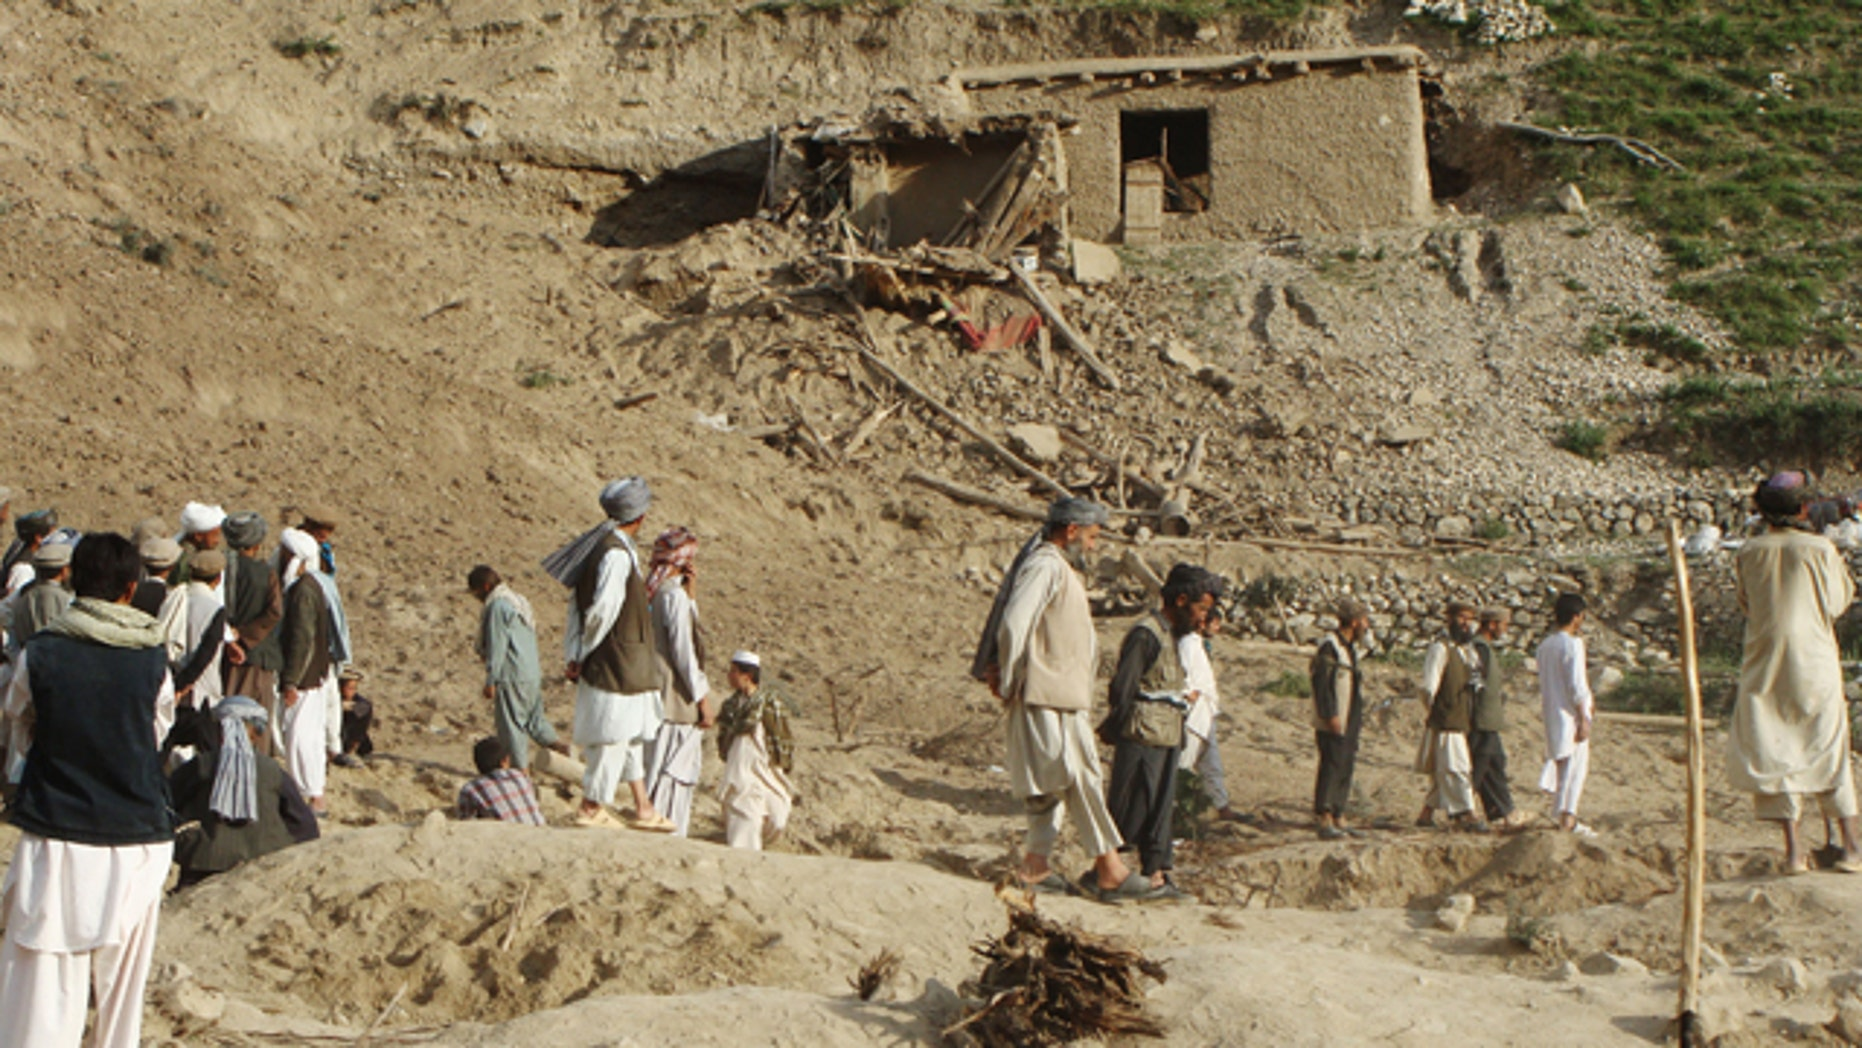 June 11, 2012: Afghans stand at the site after an earthquake hit Baghlan province, north of Kabul, Afghanistan.